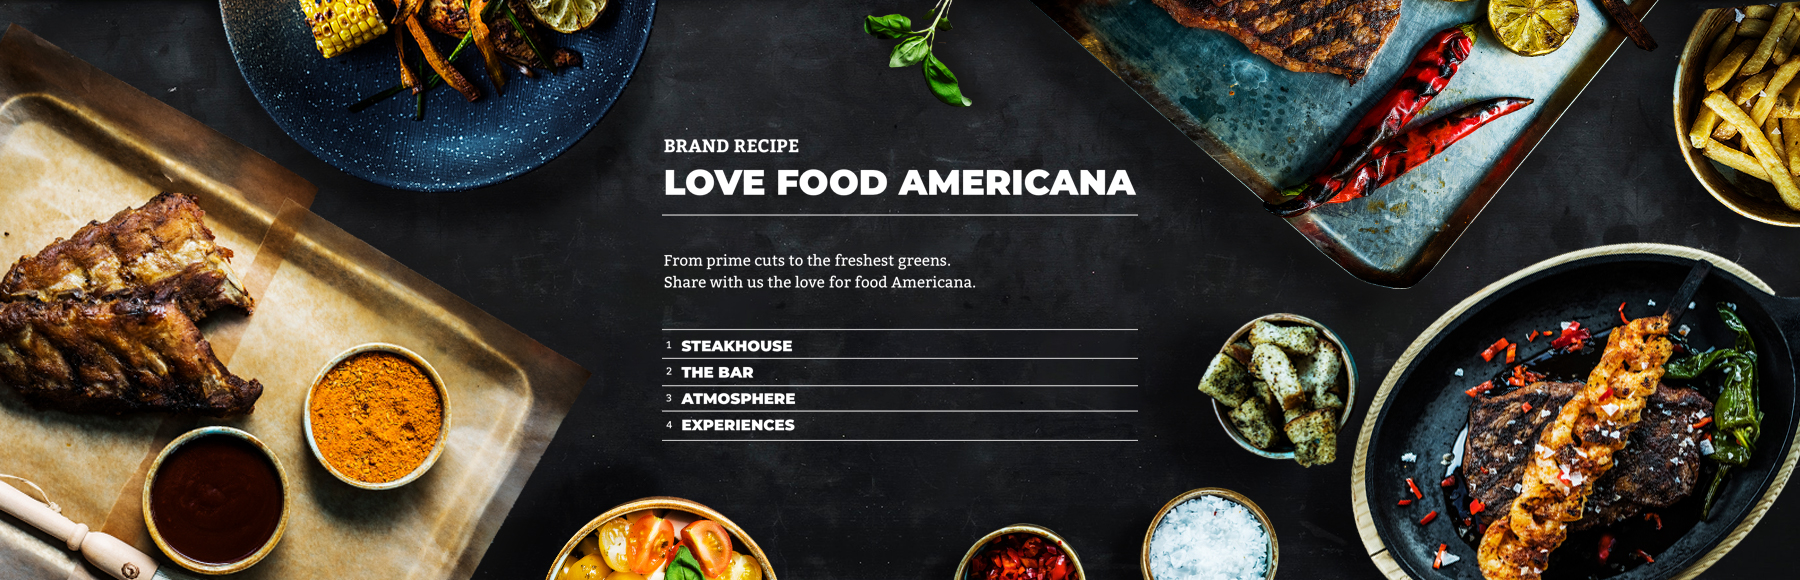 Stars & Stripes Brand recipe